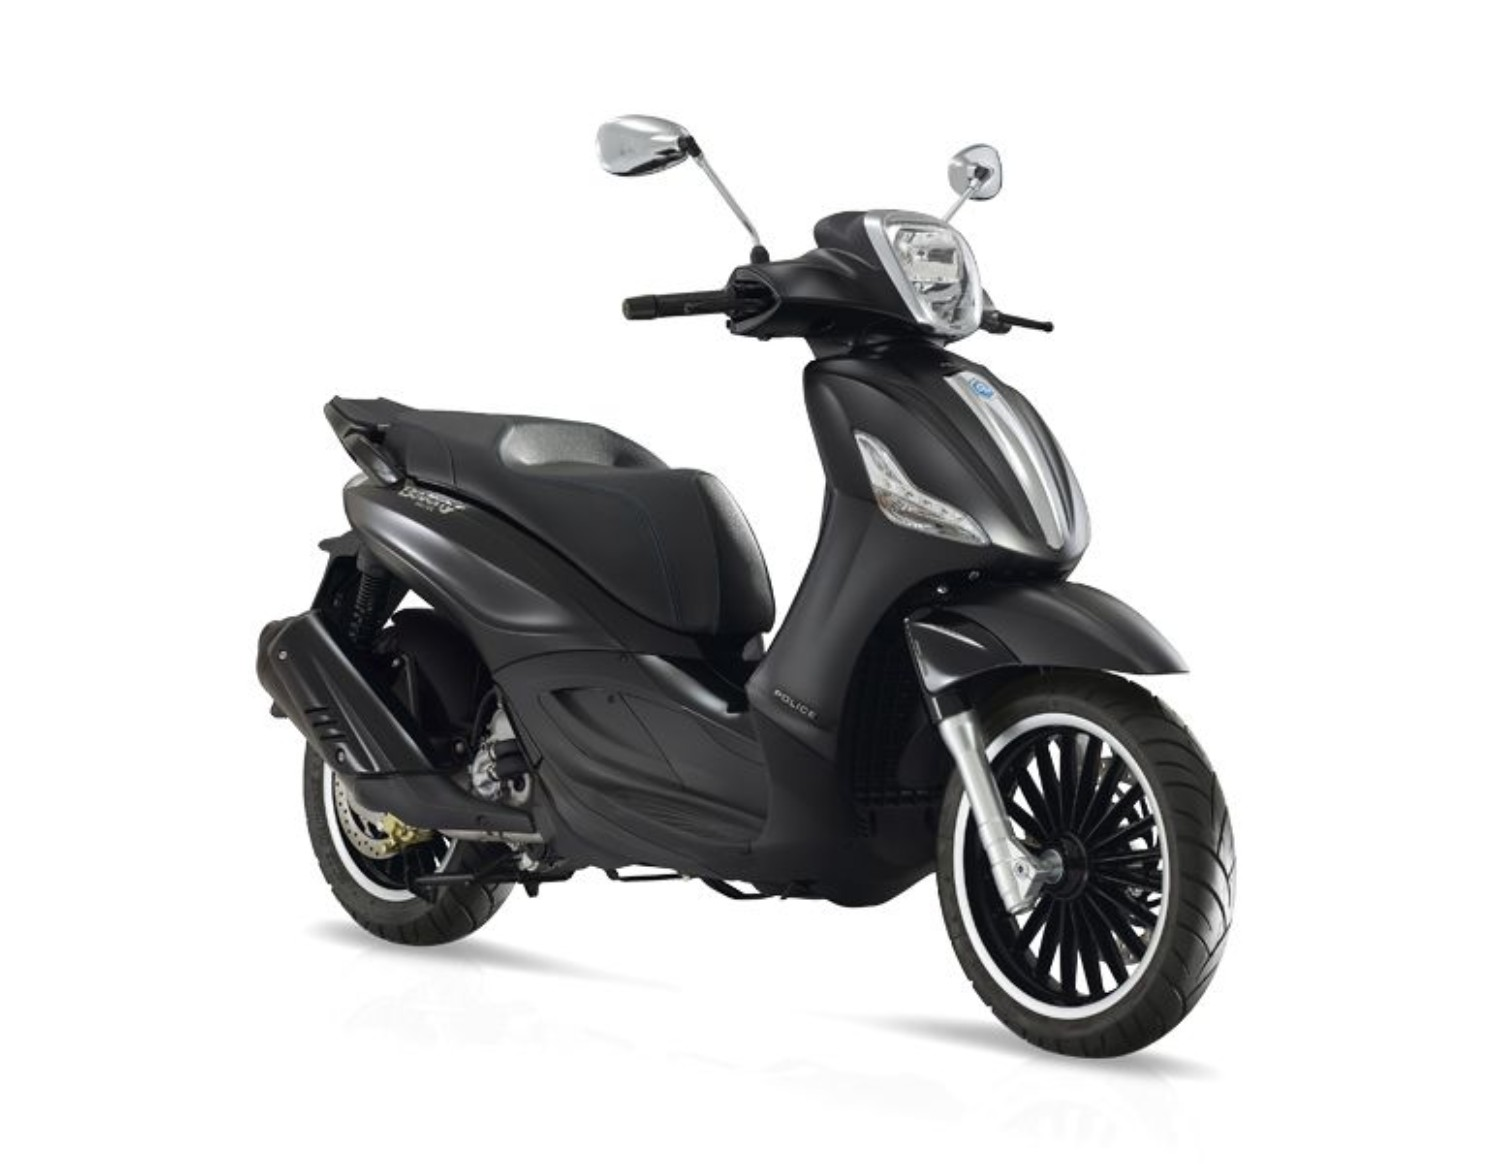 Piaggio BEVERLY 300 POLICE ABS